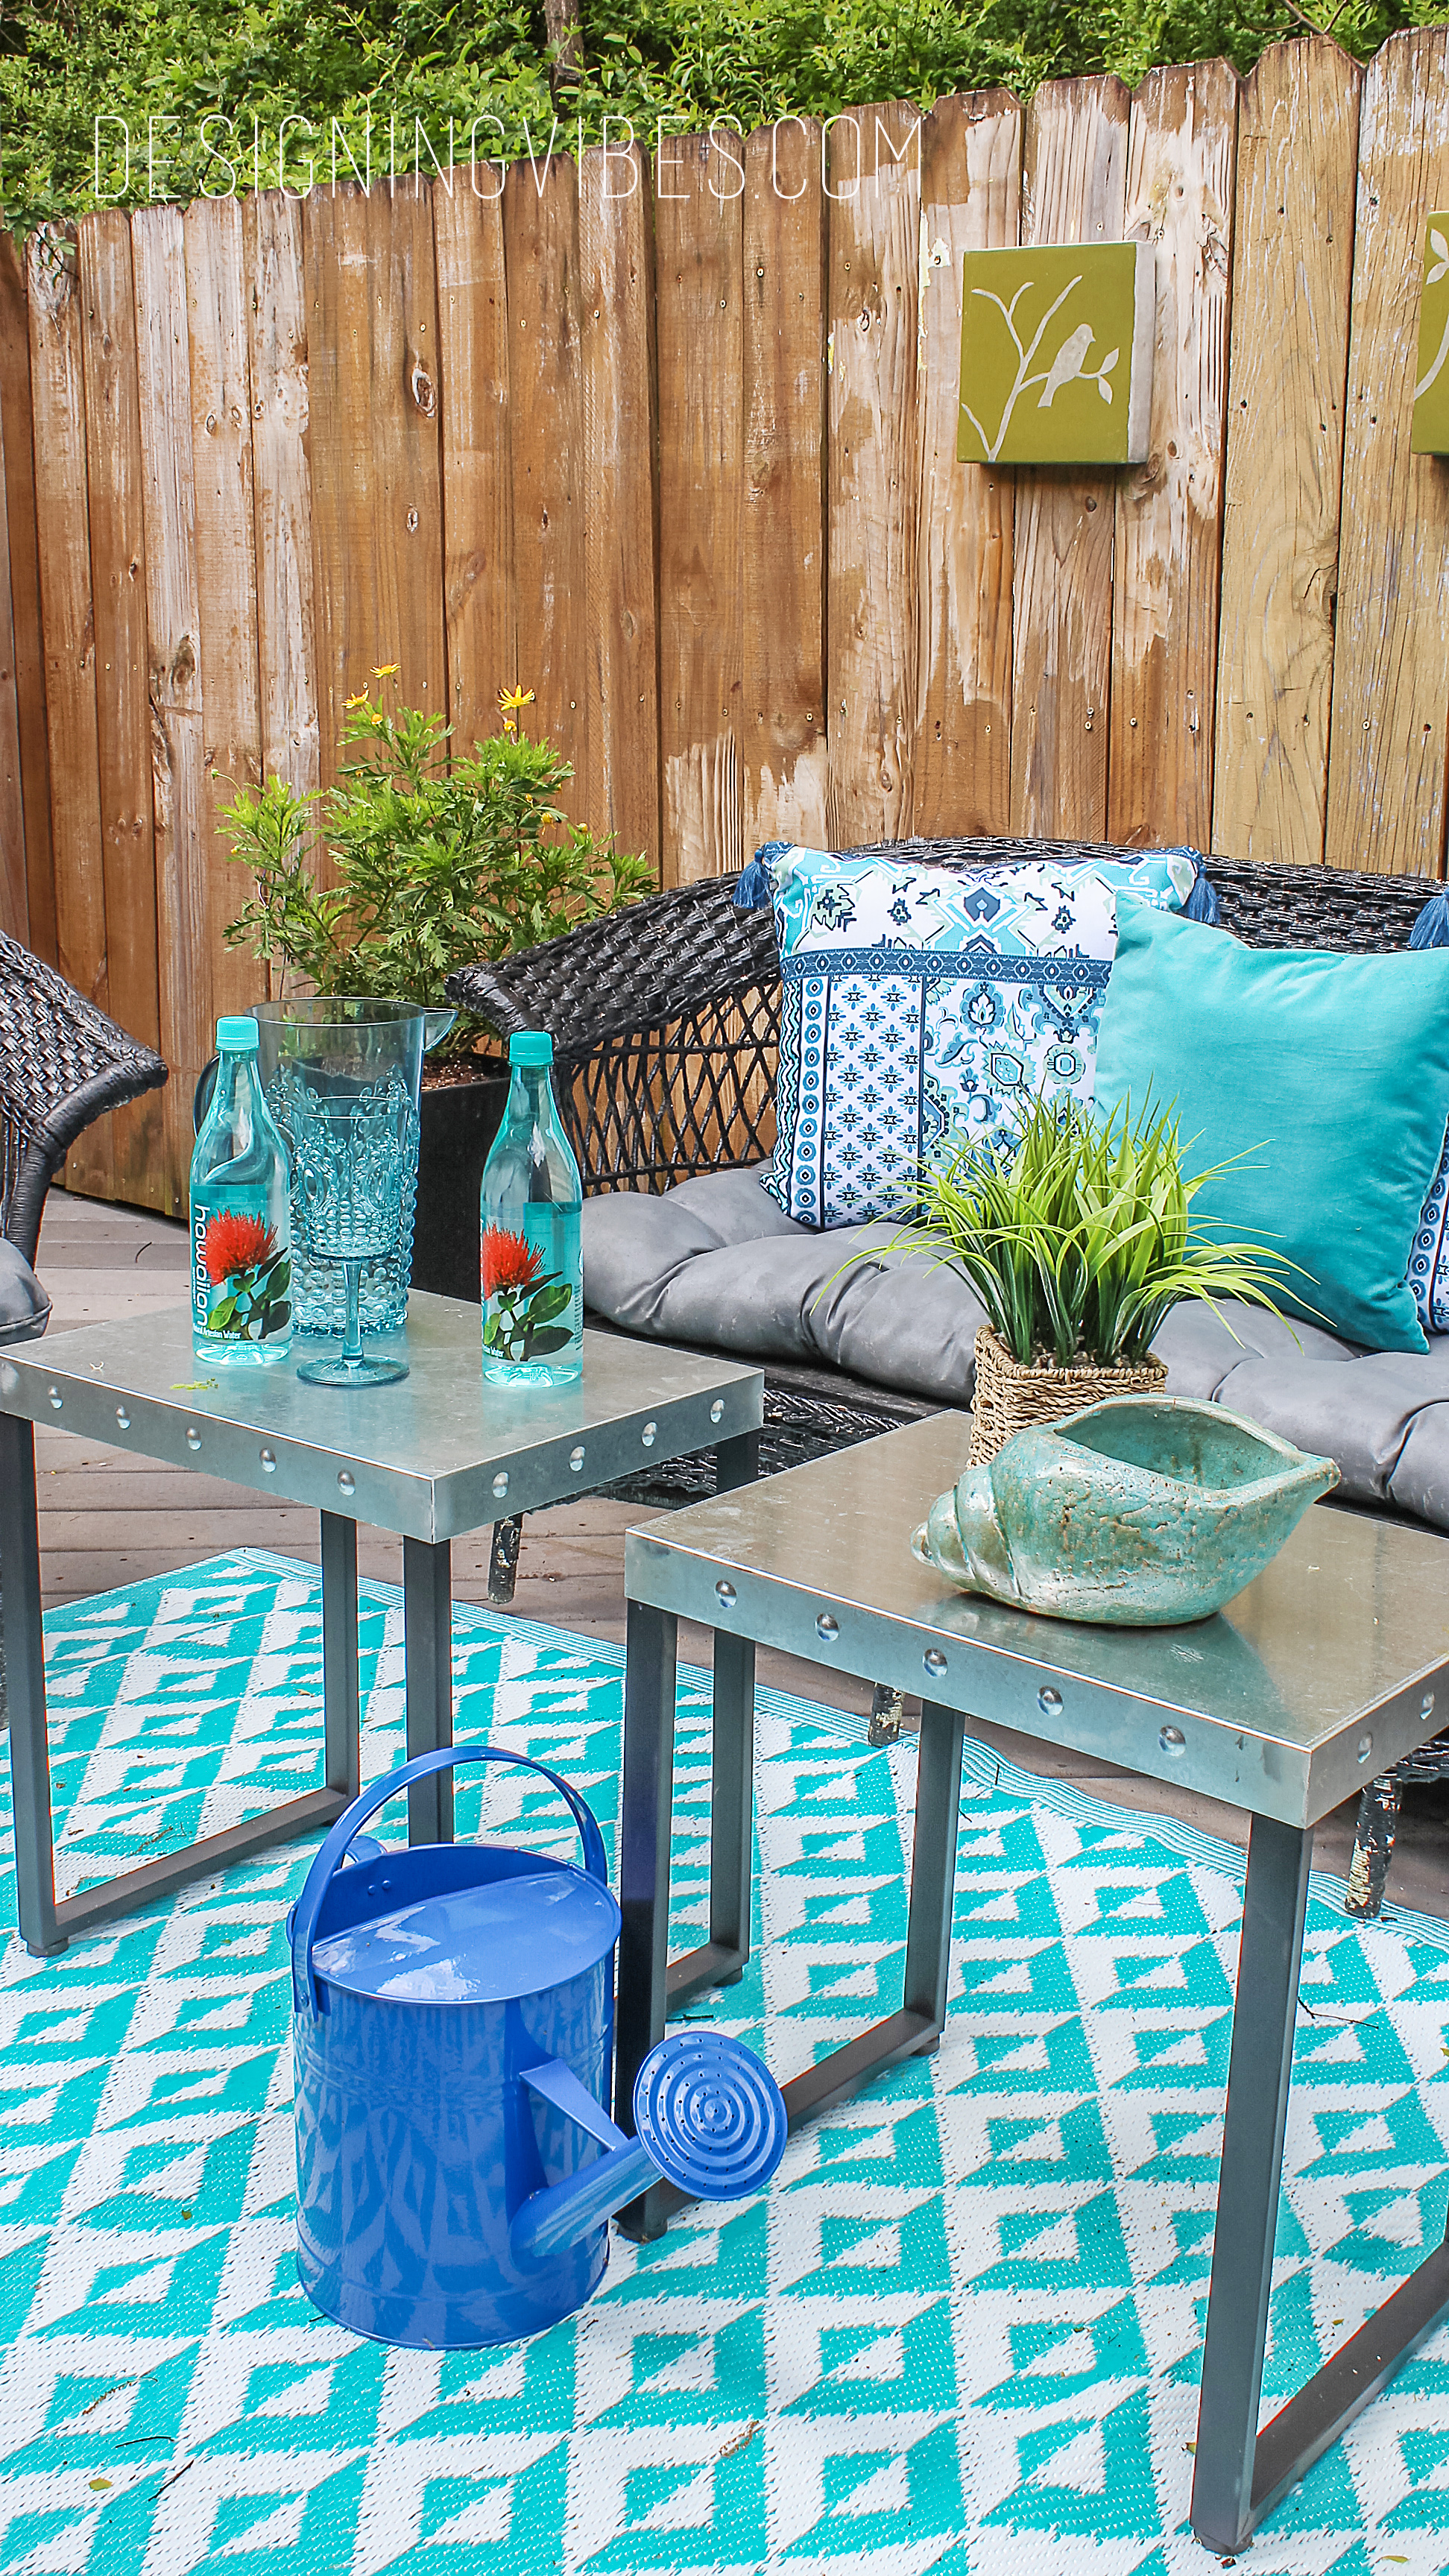 Spray Paint Fixes Everything DIY Patio Furniture Makeover Designing Vibes